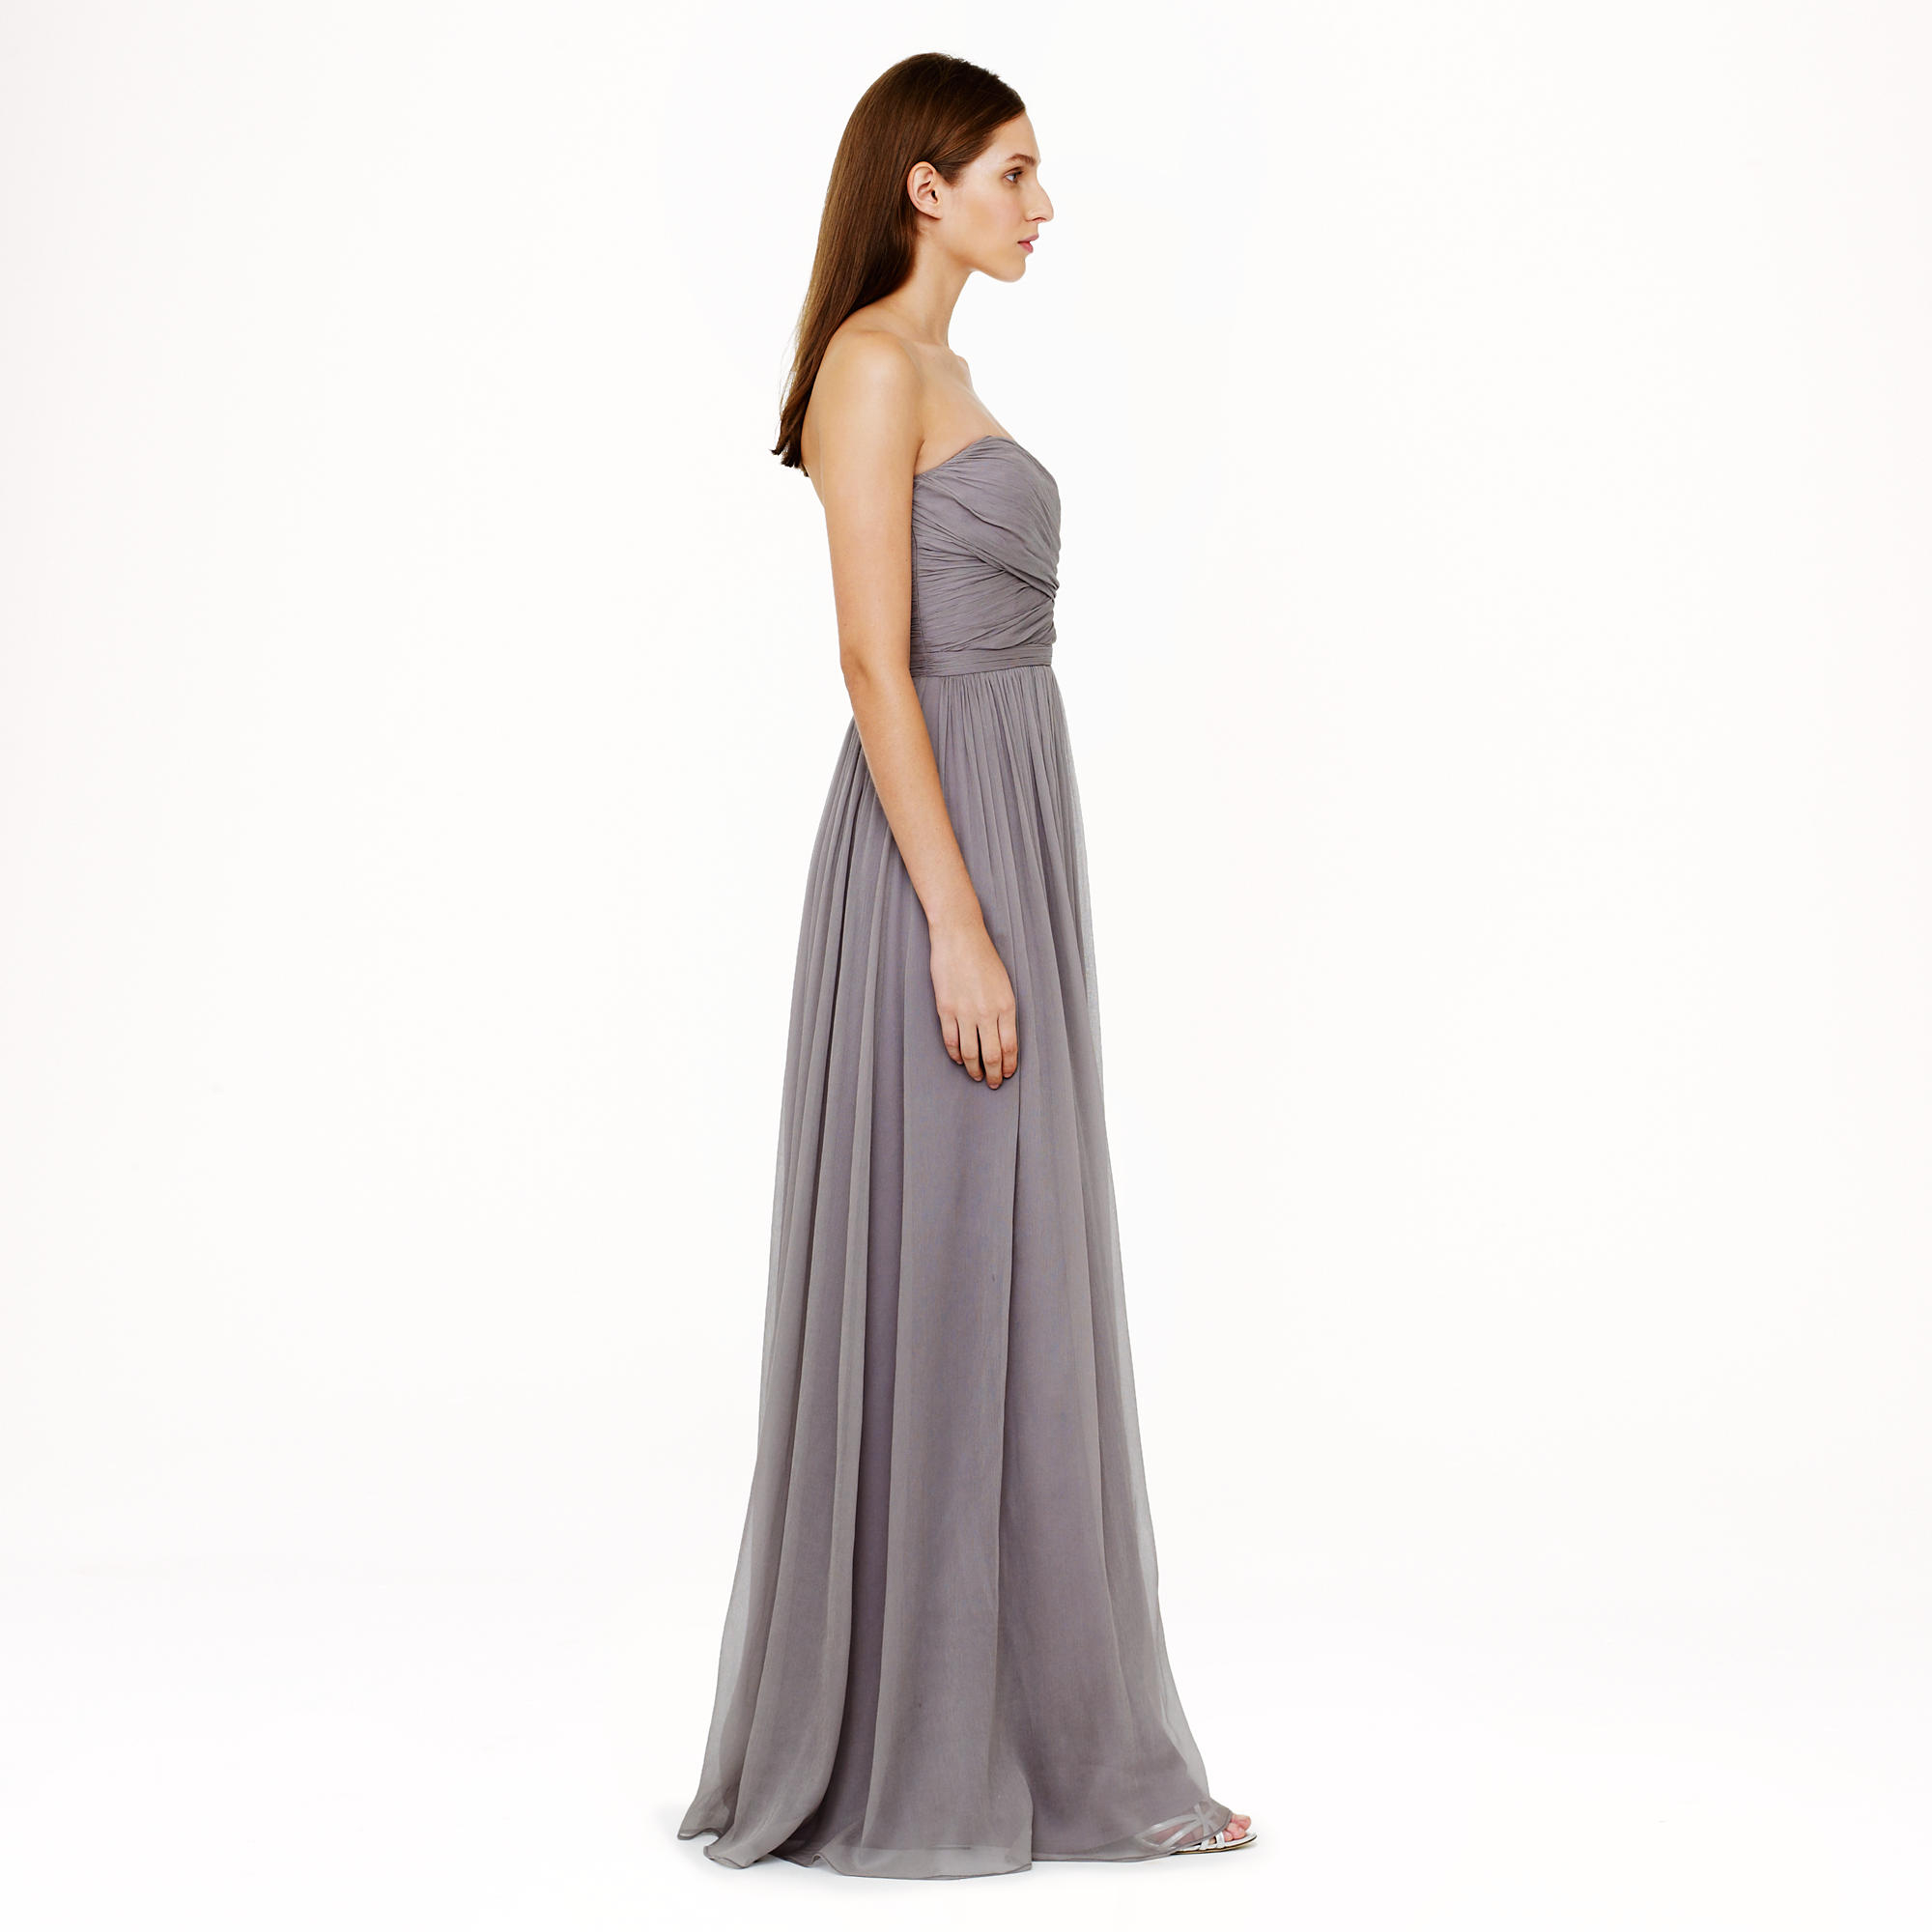 Lyst - J.Crew Petite Arabelle Long Dress In Silk Chiffon in Gray